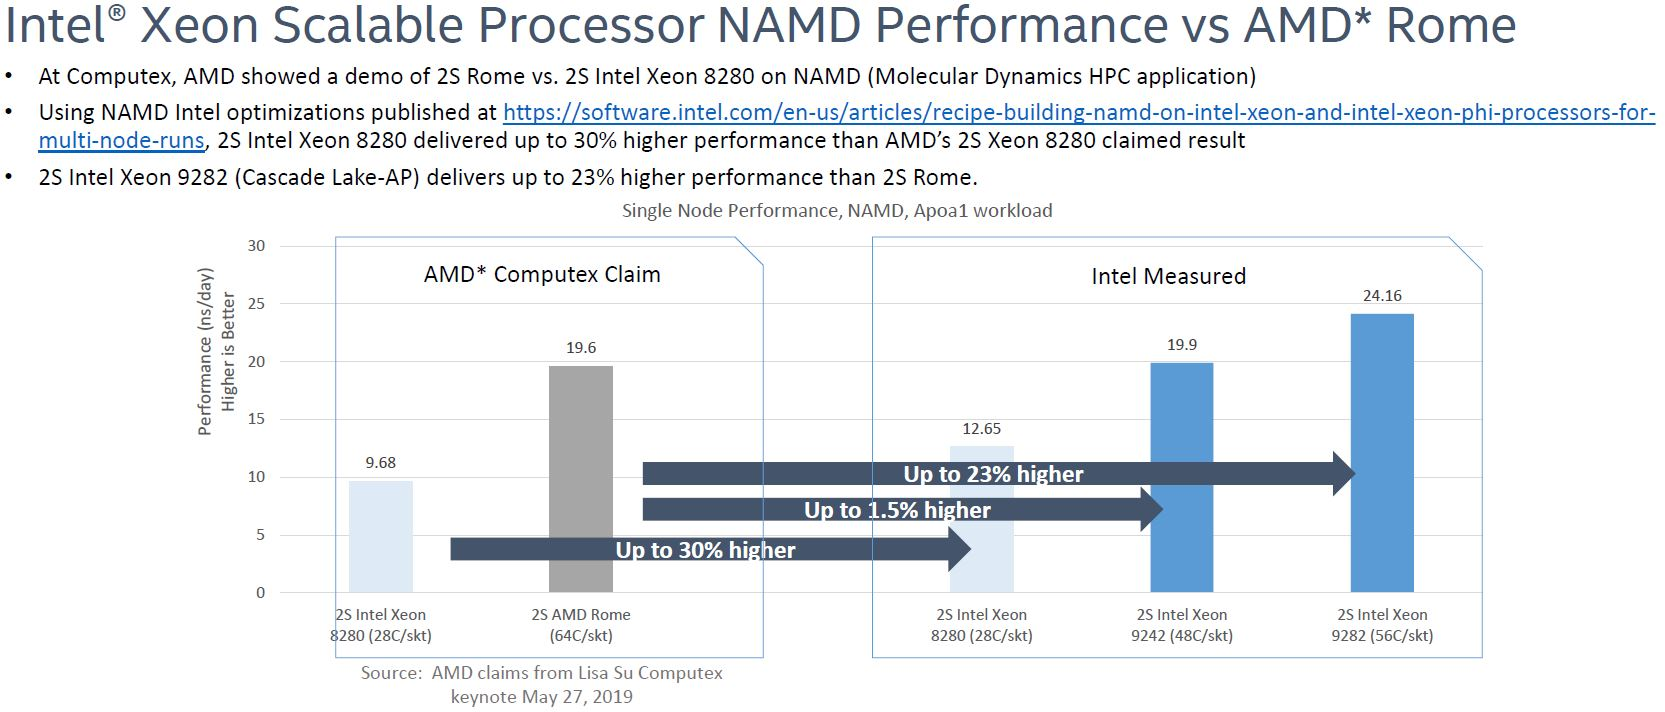 AMD EPYC Rome V Intel Xeon Scalable NAMD Comparsion May 2019